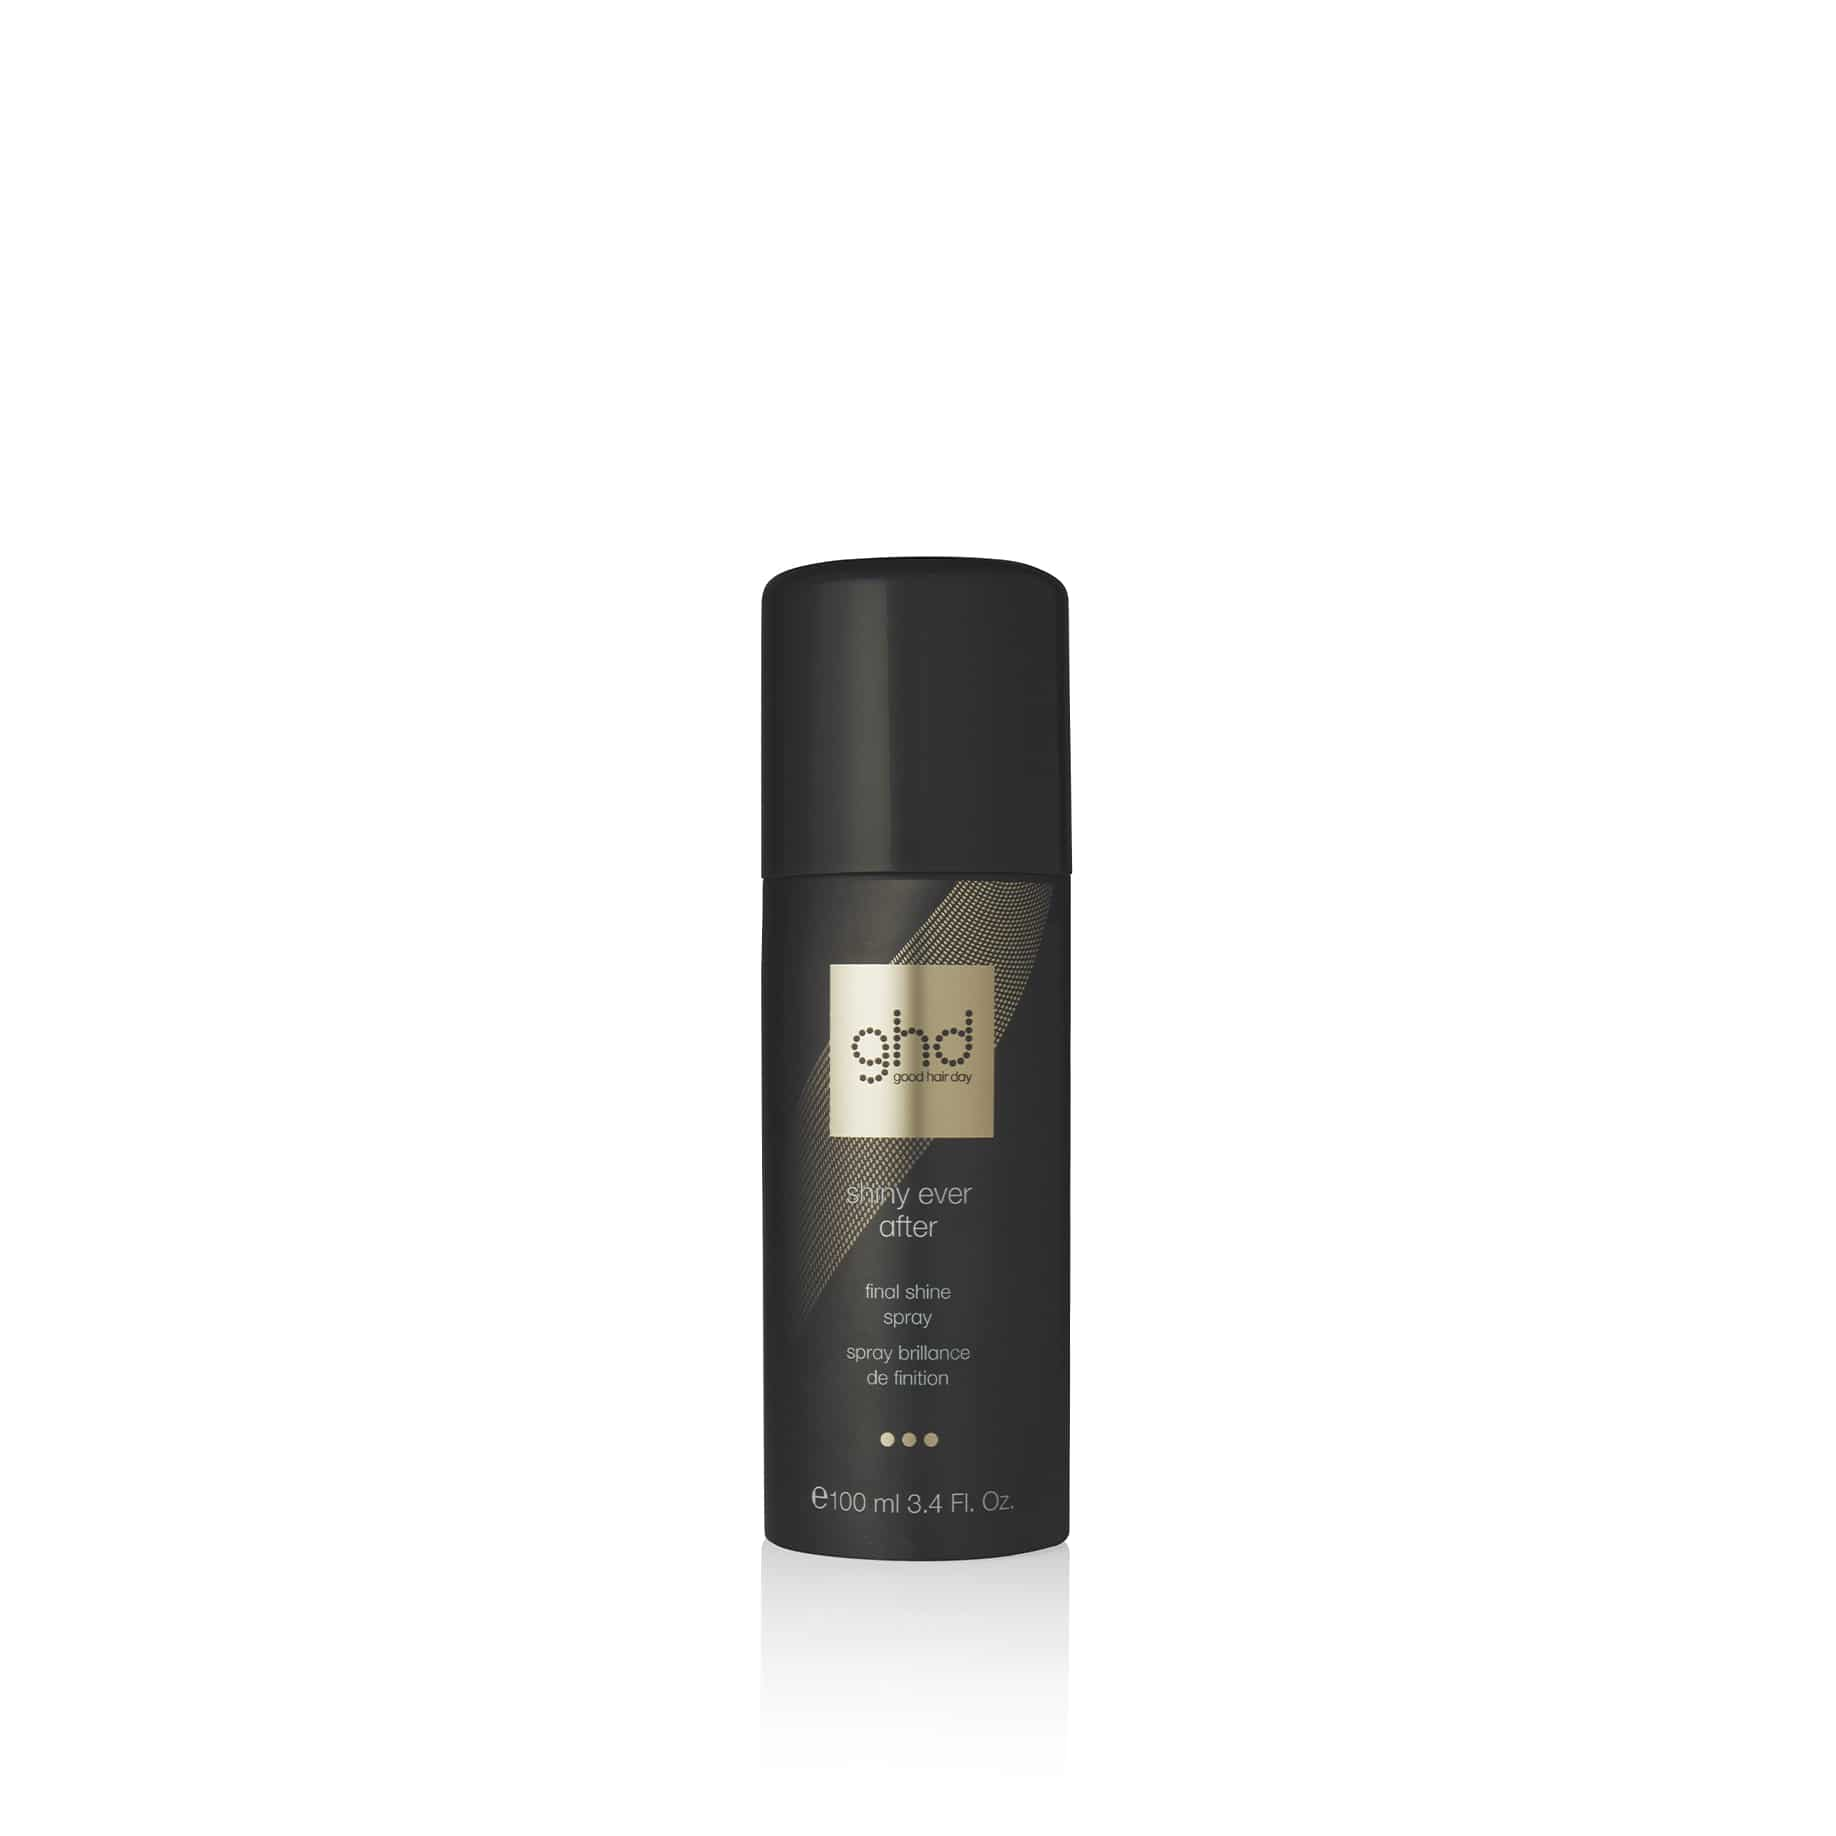 GHD SHINY EVER AFTER - FINAL SHINE SPRAY